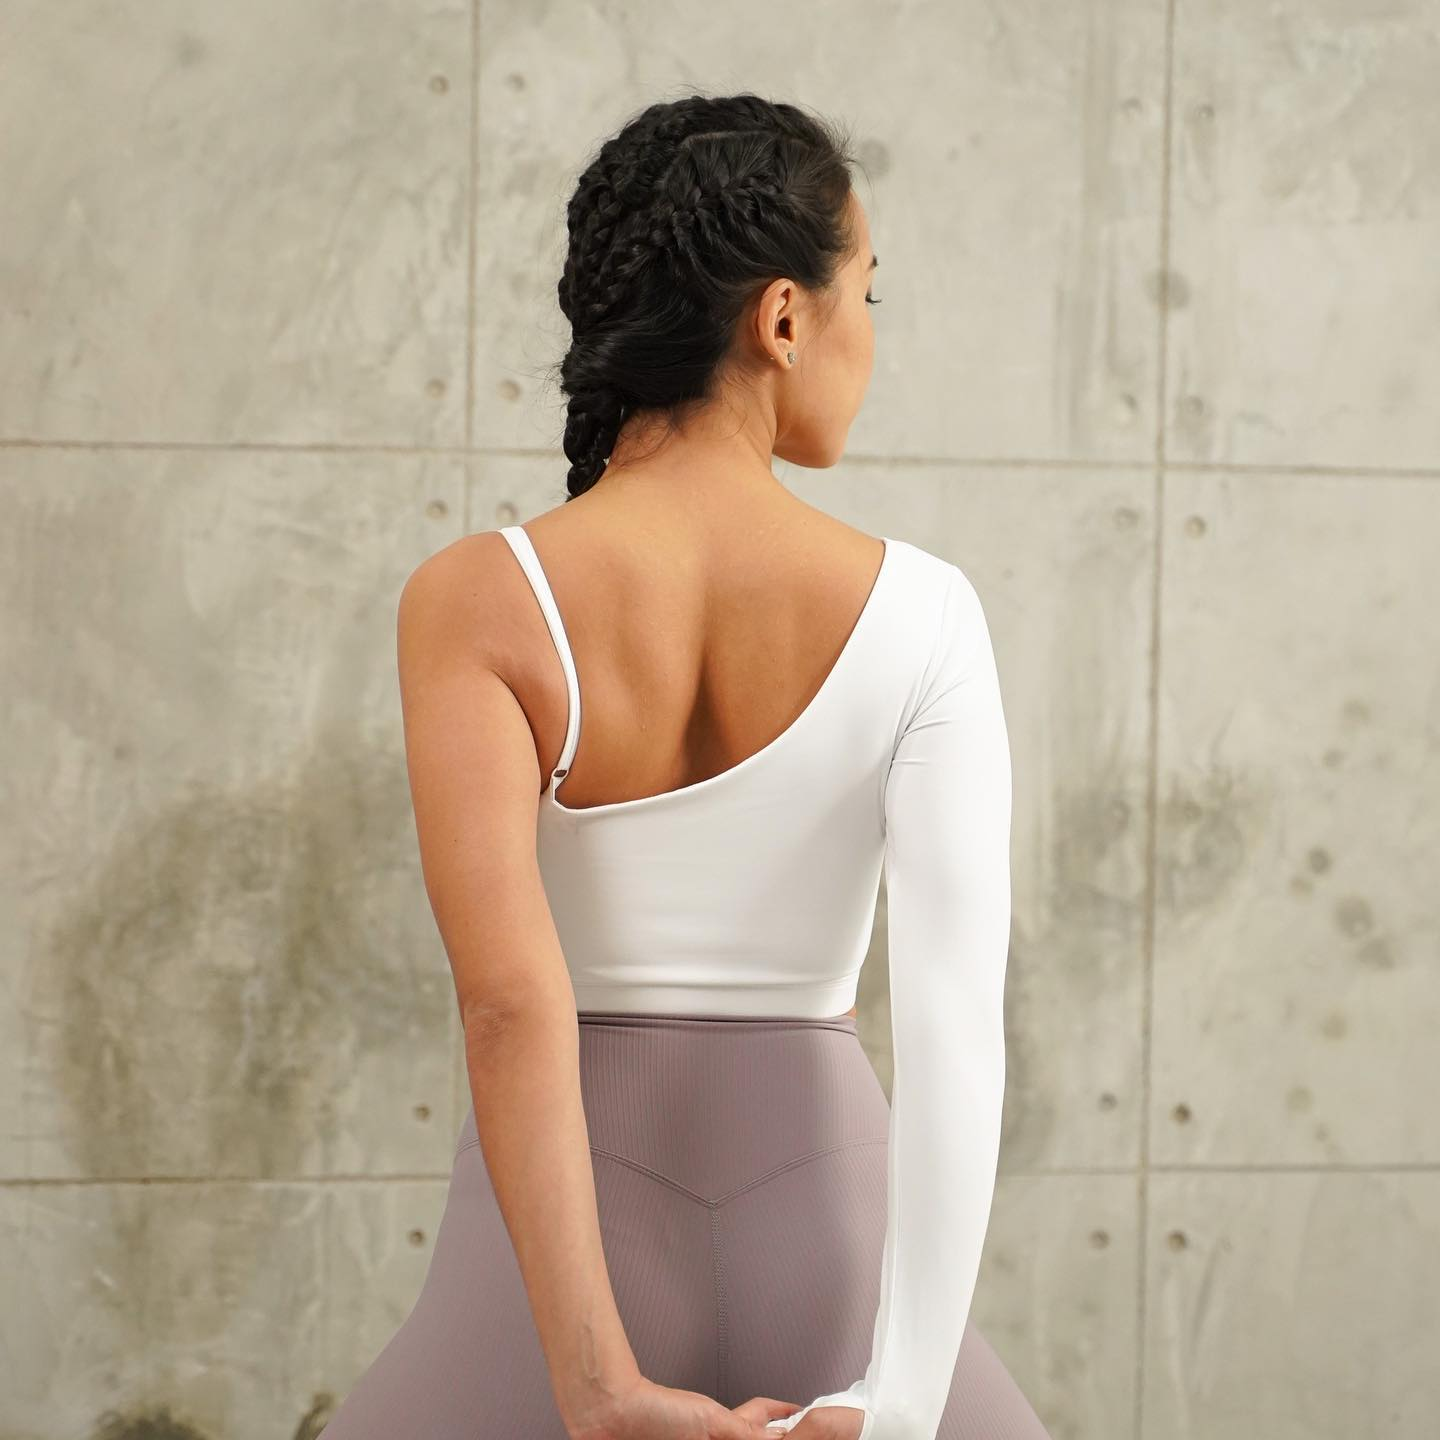 elevate-your-activewear-with-these-budget-friendly-pieces-that-won't-break-the-bank